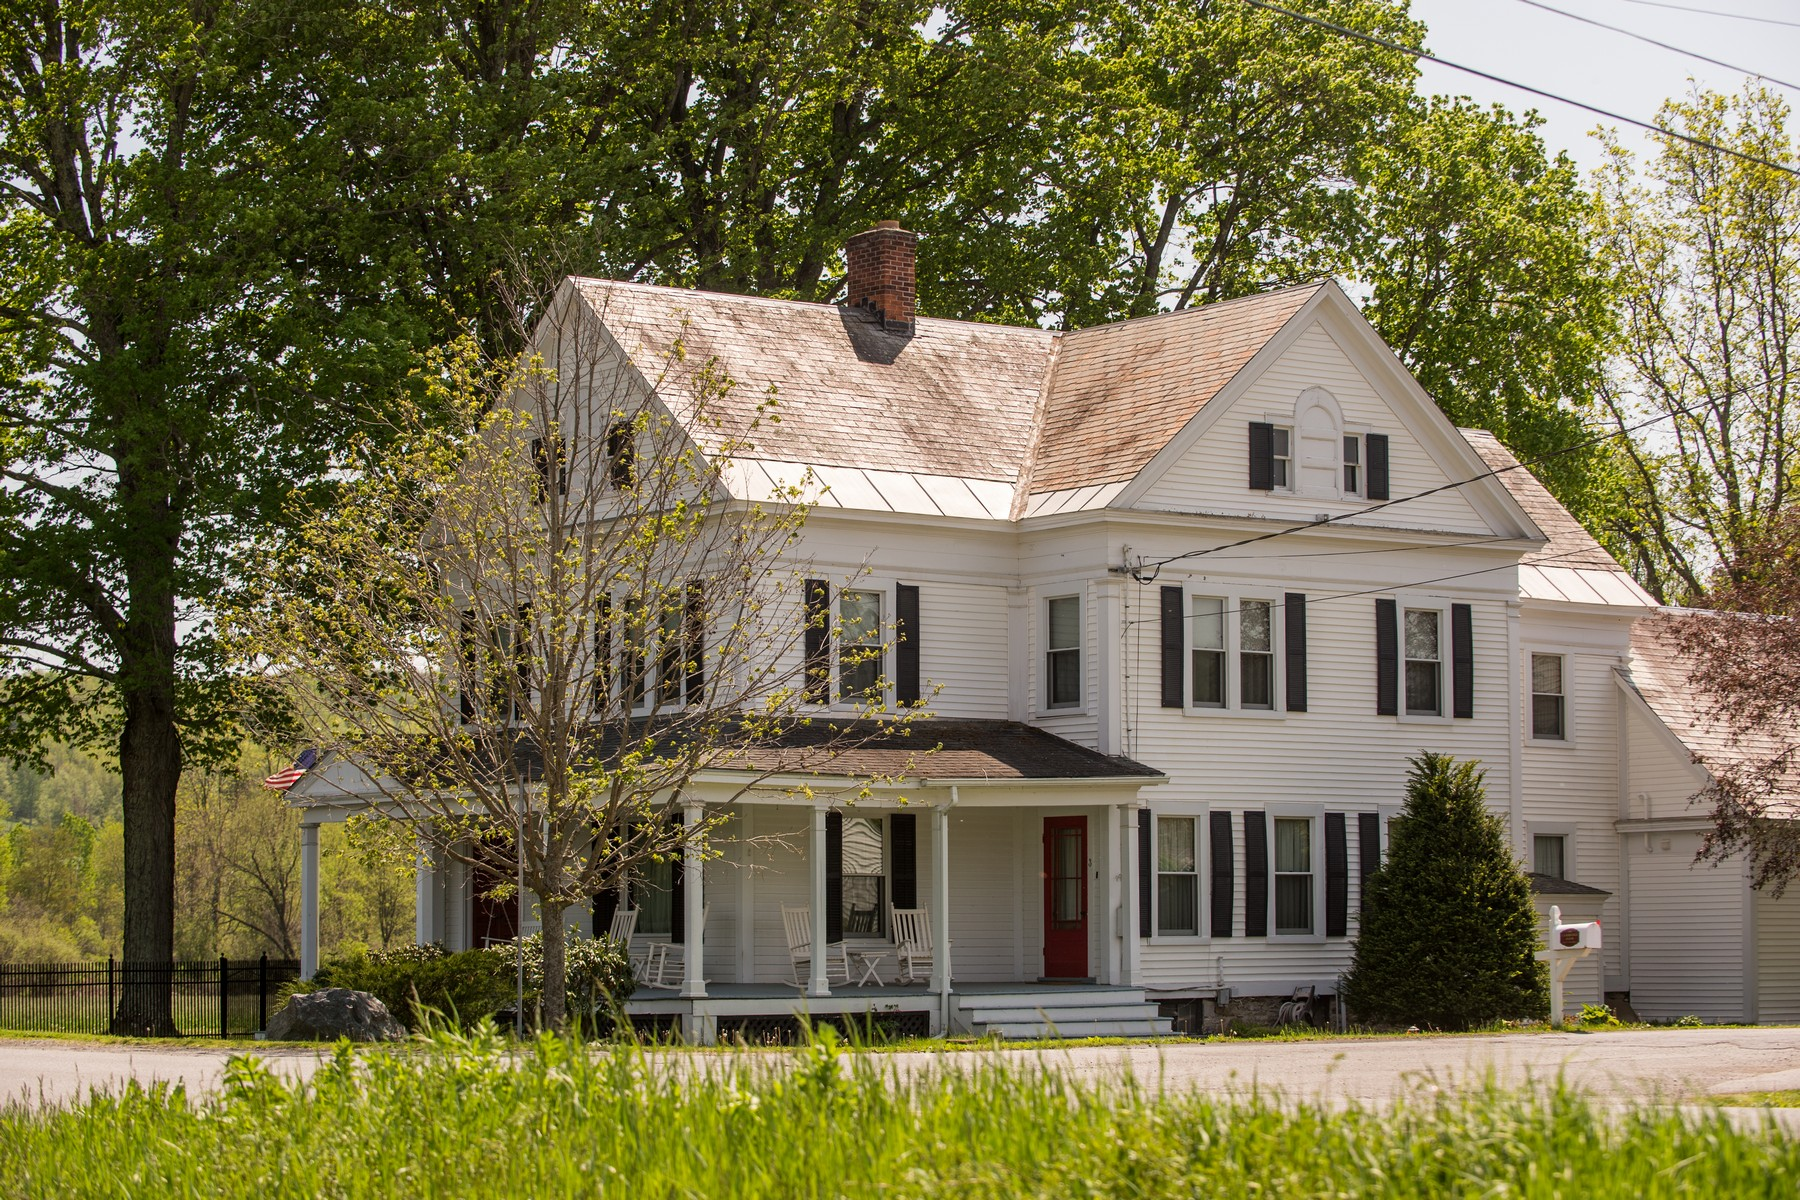 Additional photo for property listing at The Cambridge Farm 3  Perry La Cambridge, New York 12816 United States